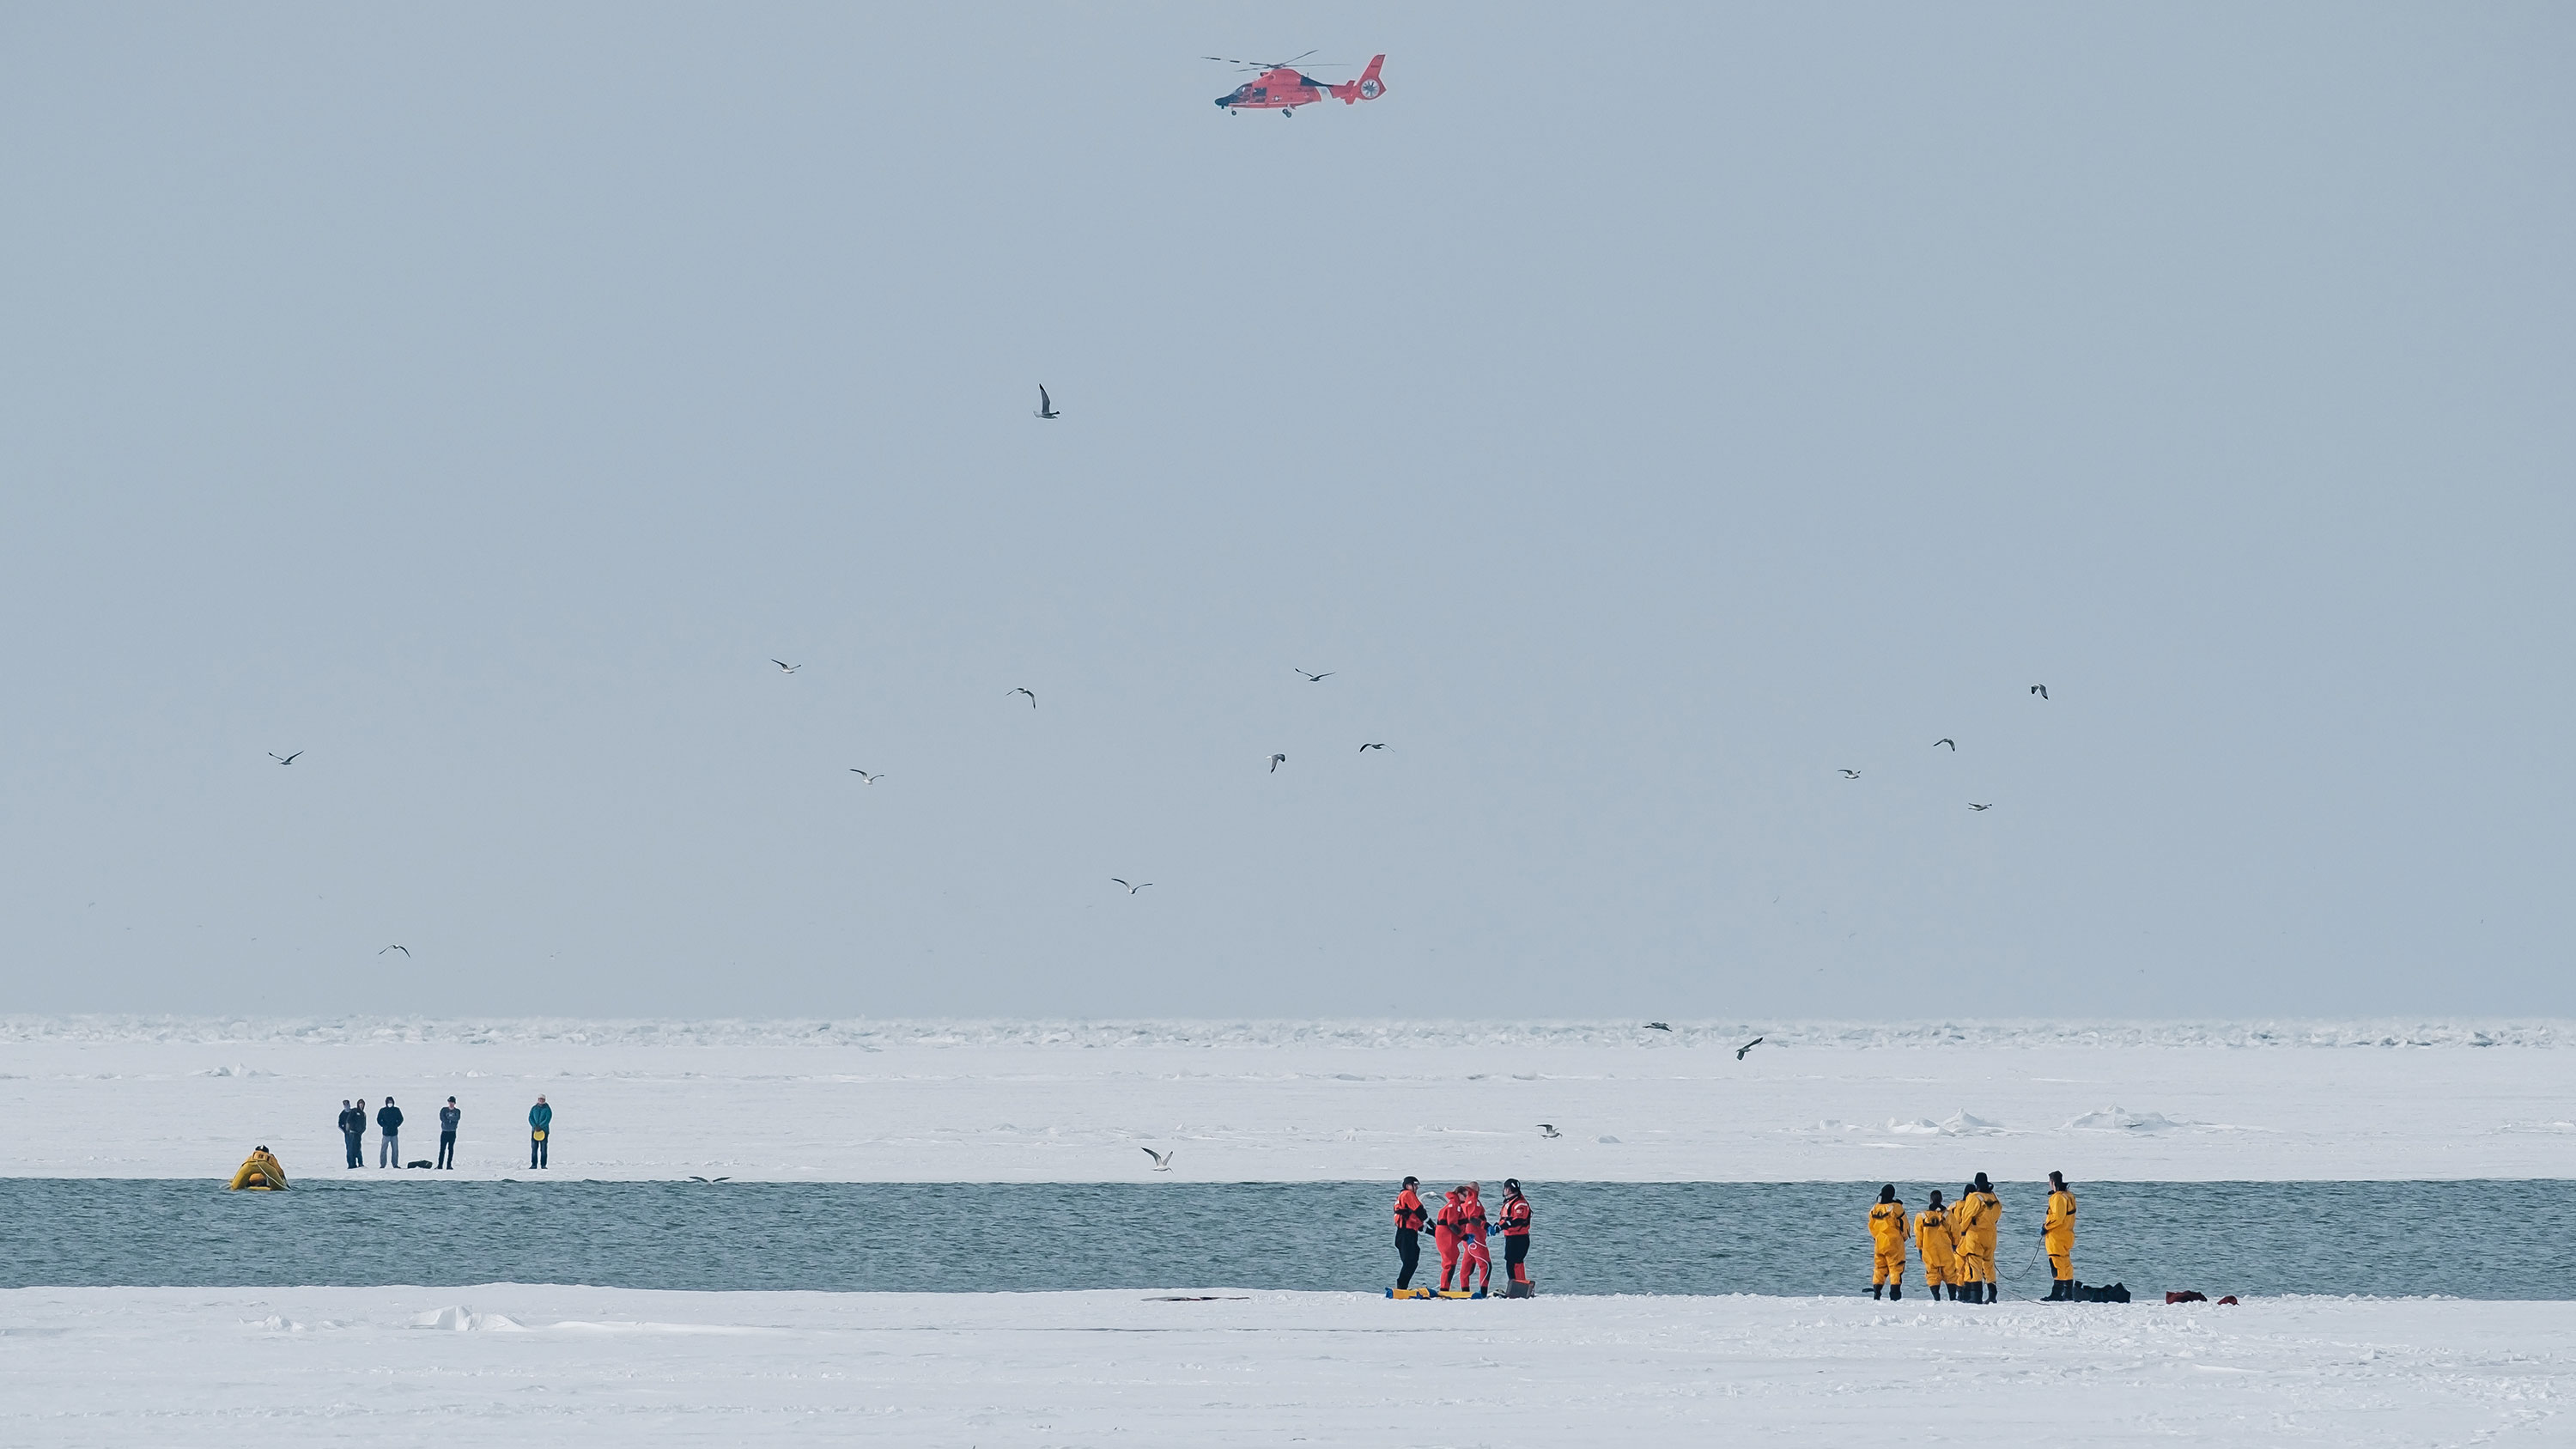 The Coast Guard rescued 10 people stranded on ice floes in Lake Erie